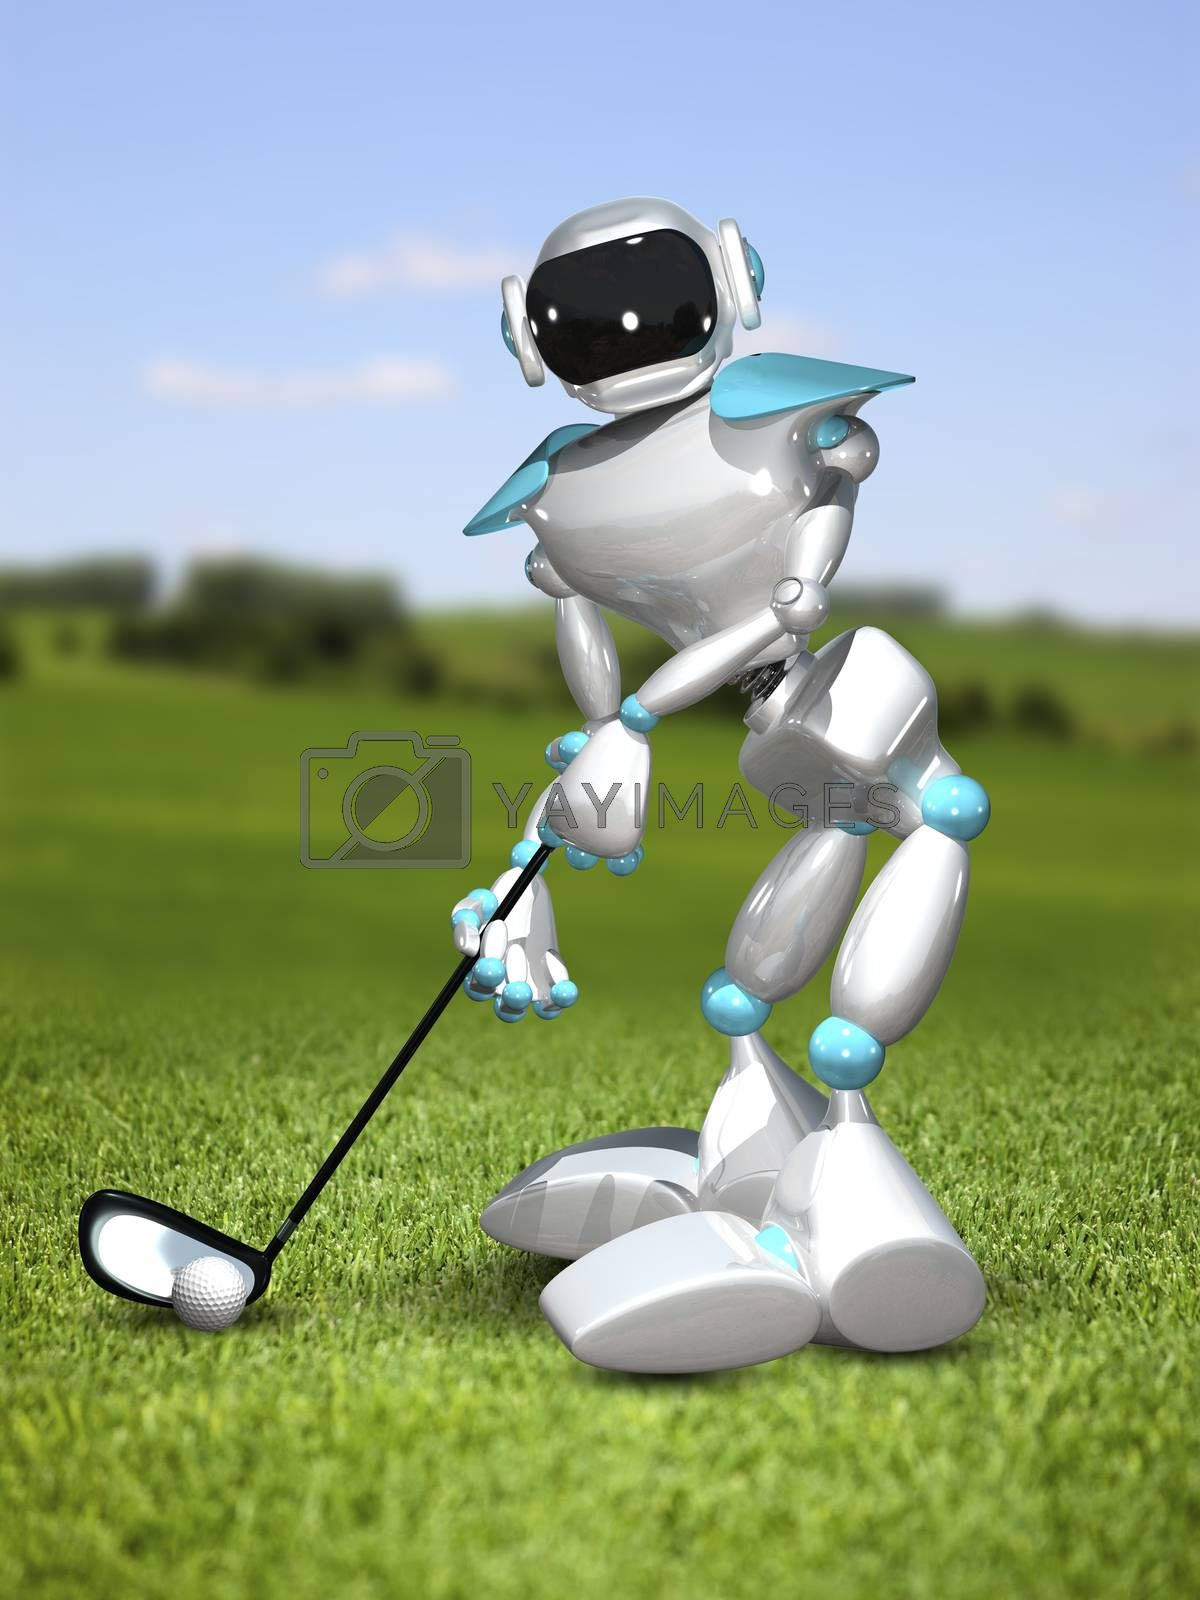 3D Illustration Robot Golfer on the Field